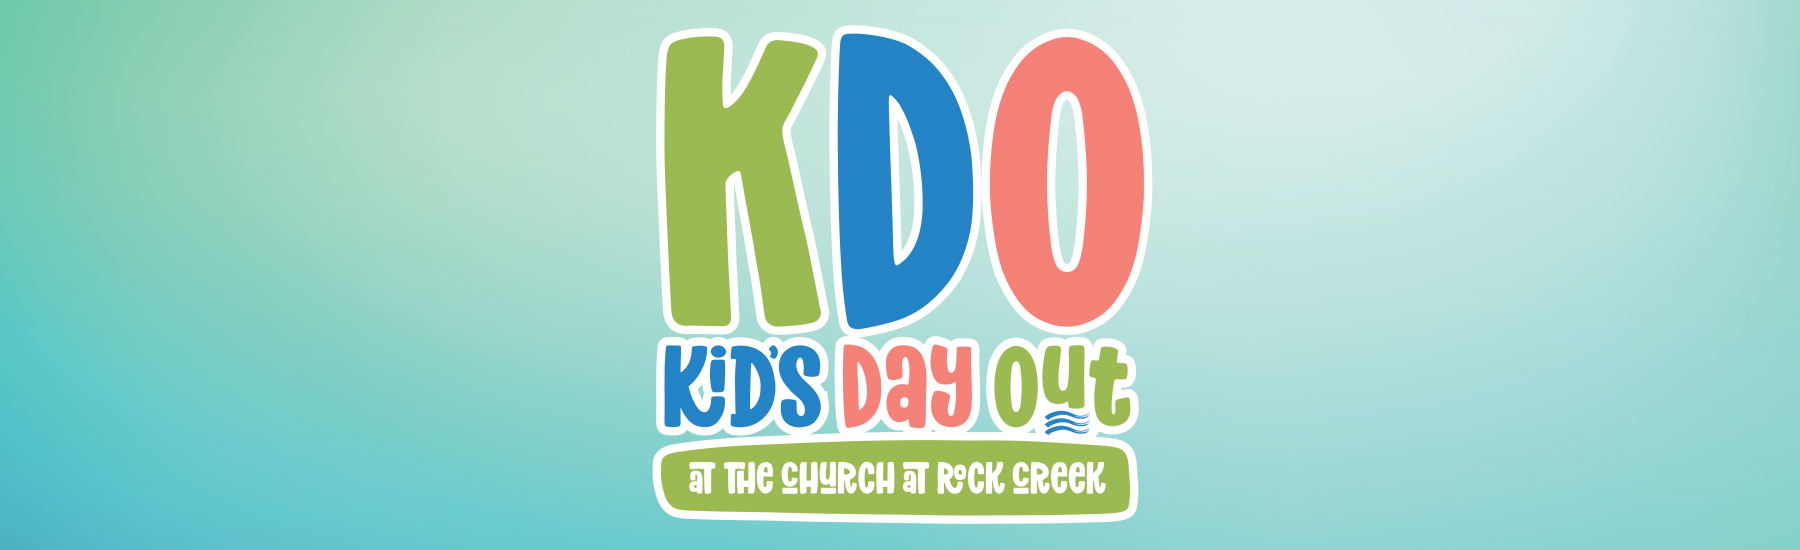 Kids Day Out